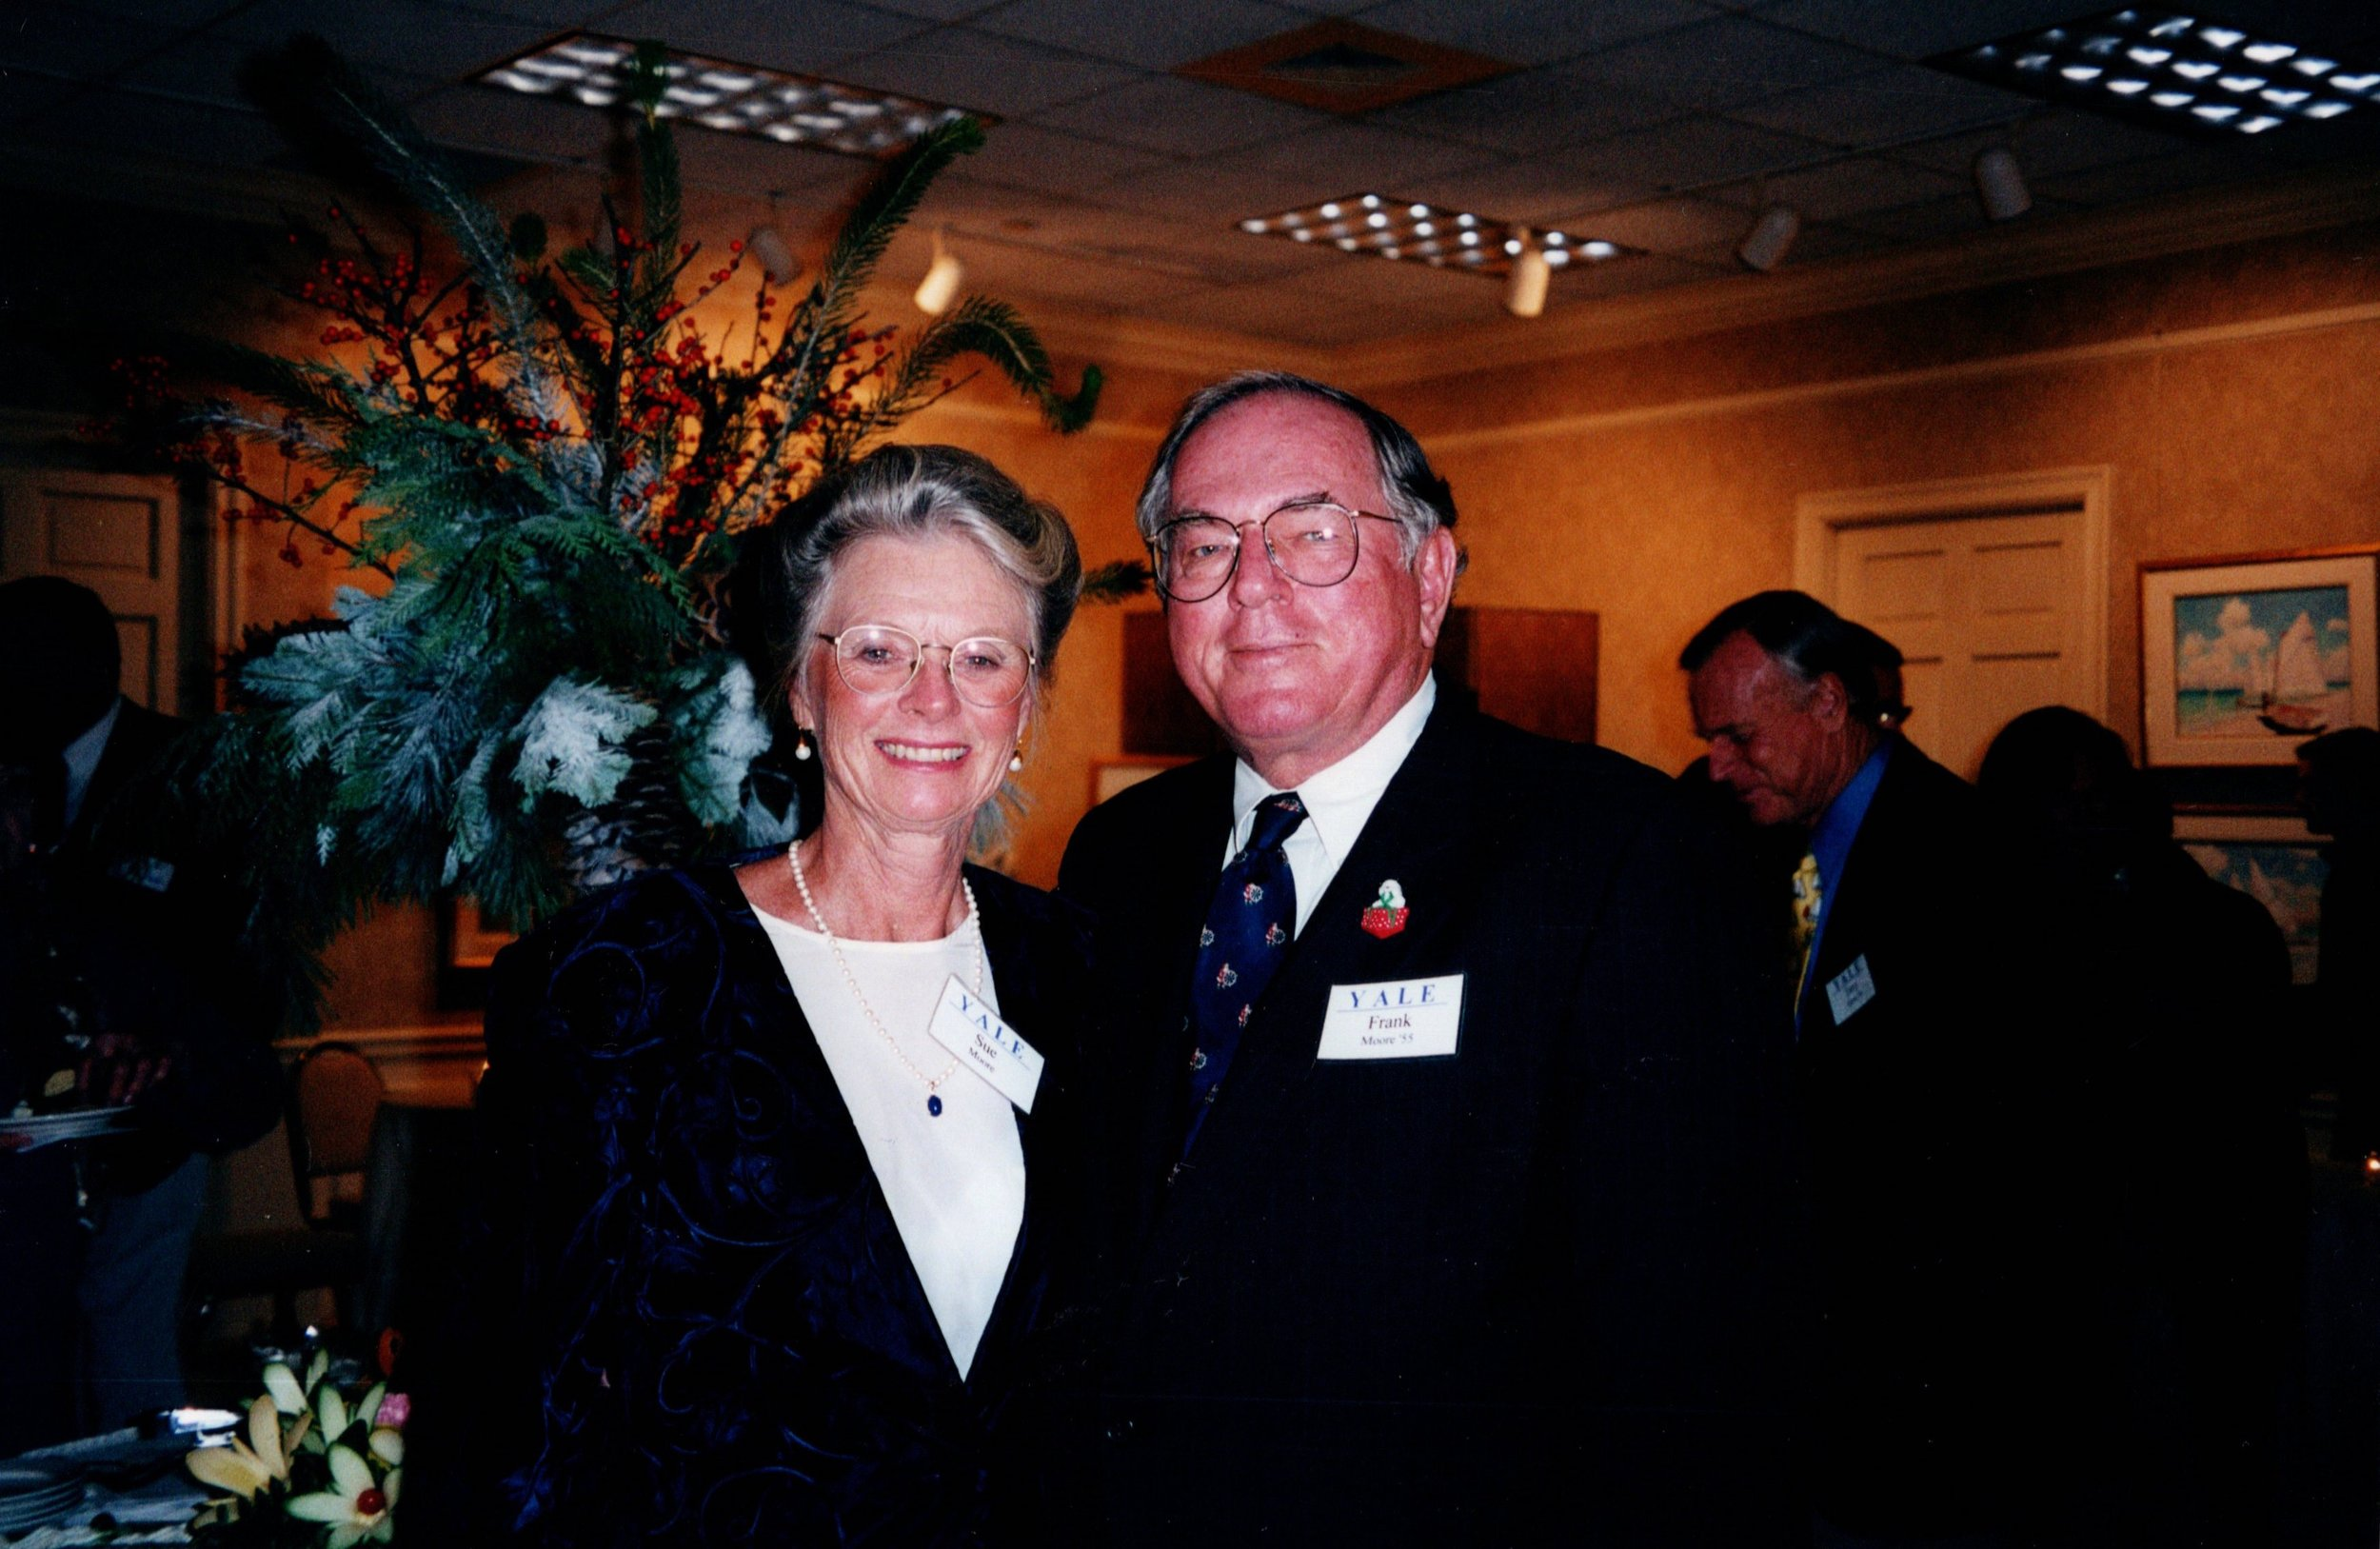 SUE AND FRANK MOORE